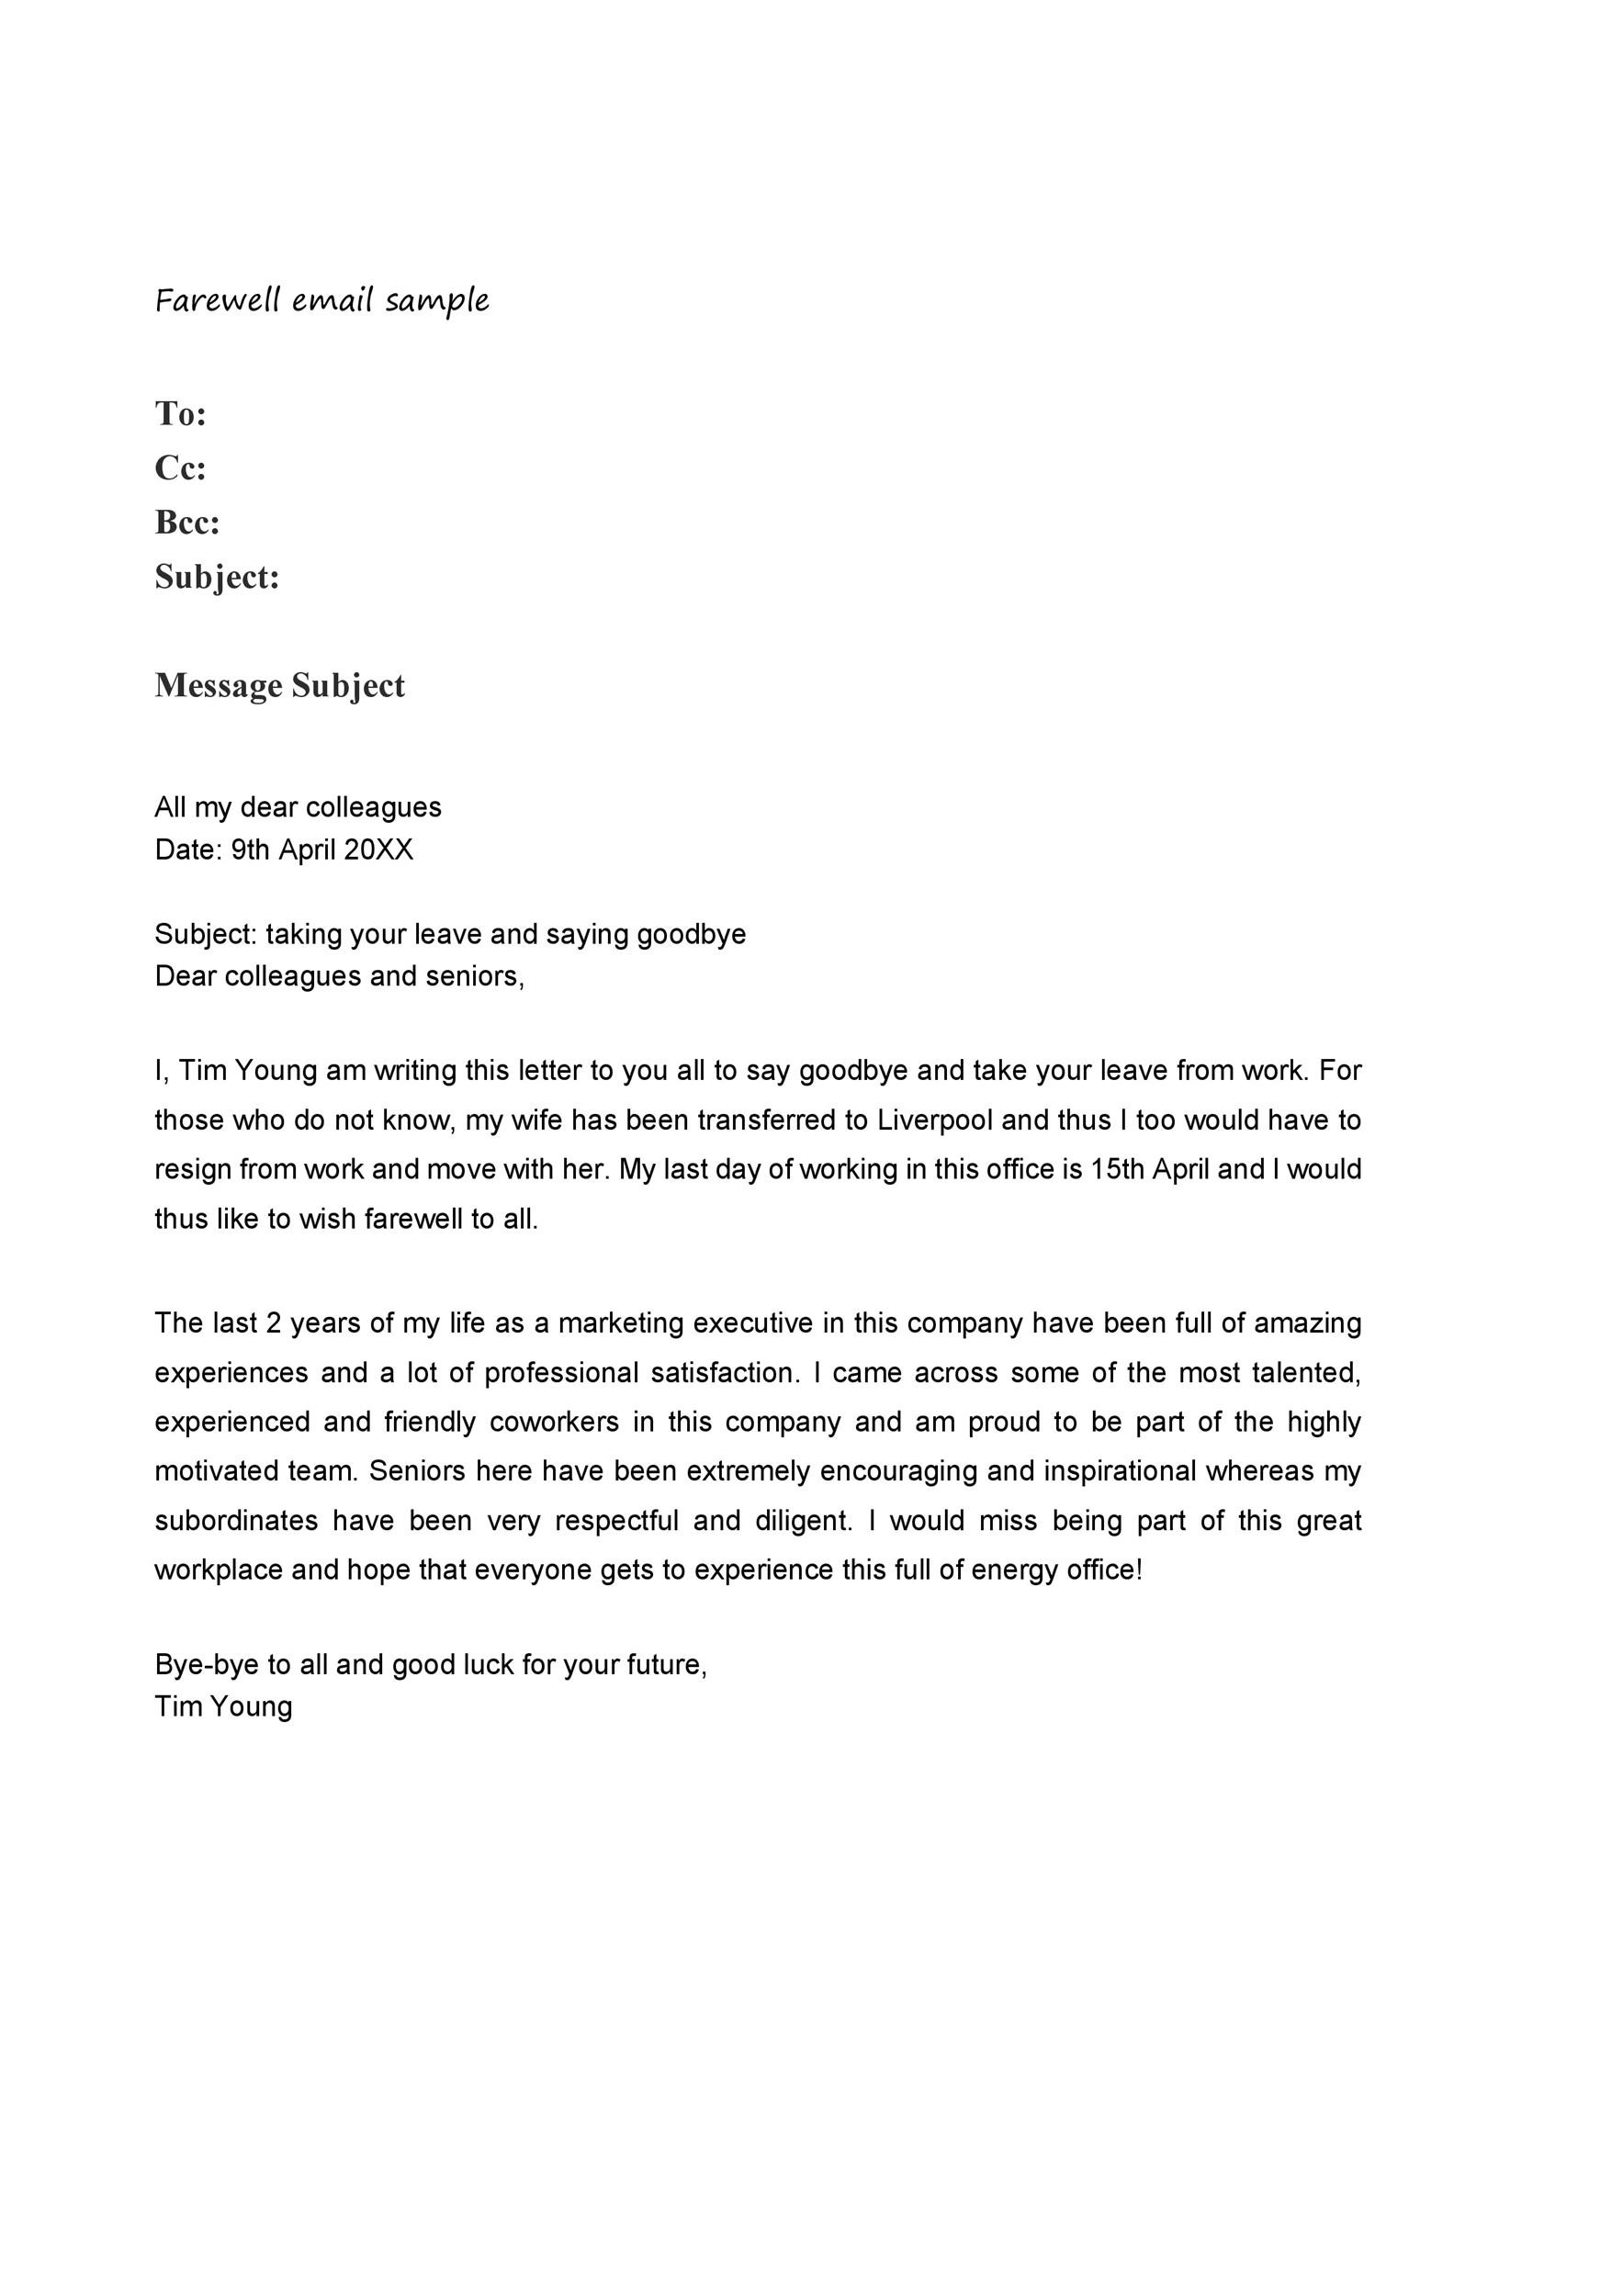 goodbye letter at work 40 farewell email templates to coworkers ᐅ template lab 21978 | farewell email template 21